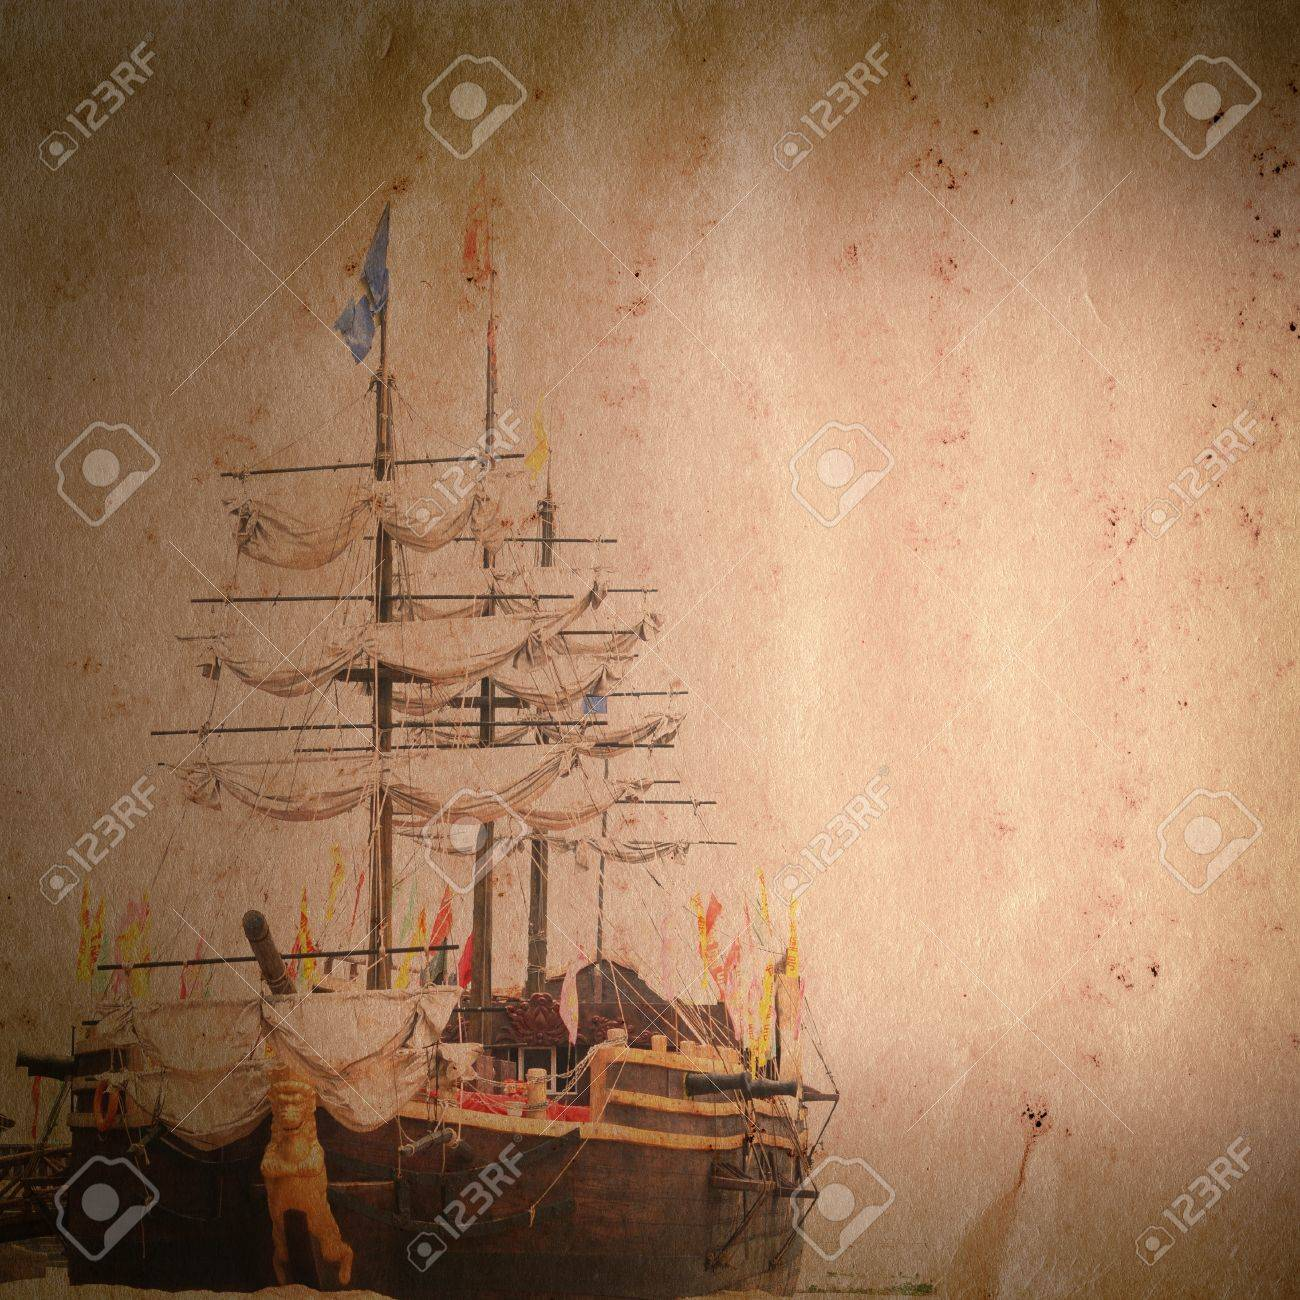 old sail ship on grunge paper texture background Stock Photo - 13463456